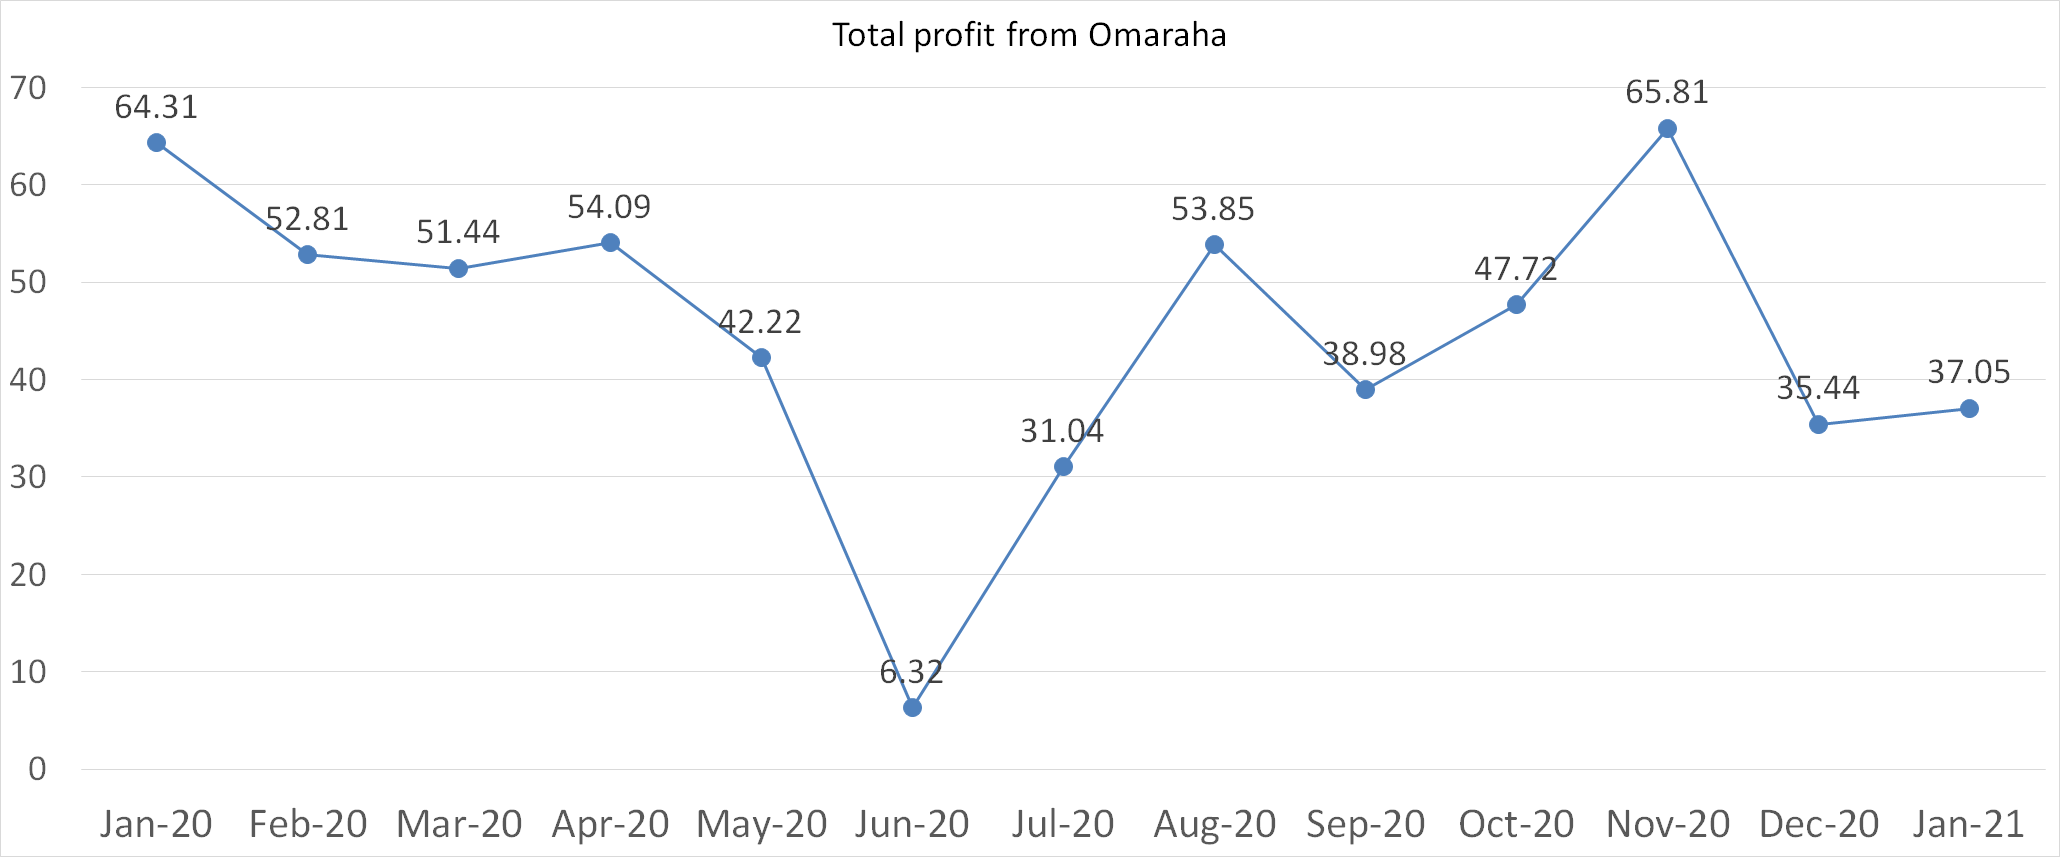 Total profit from Omaraha january 2021